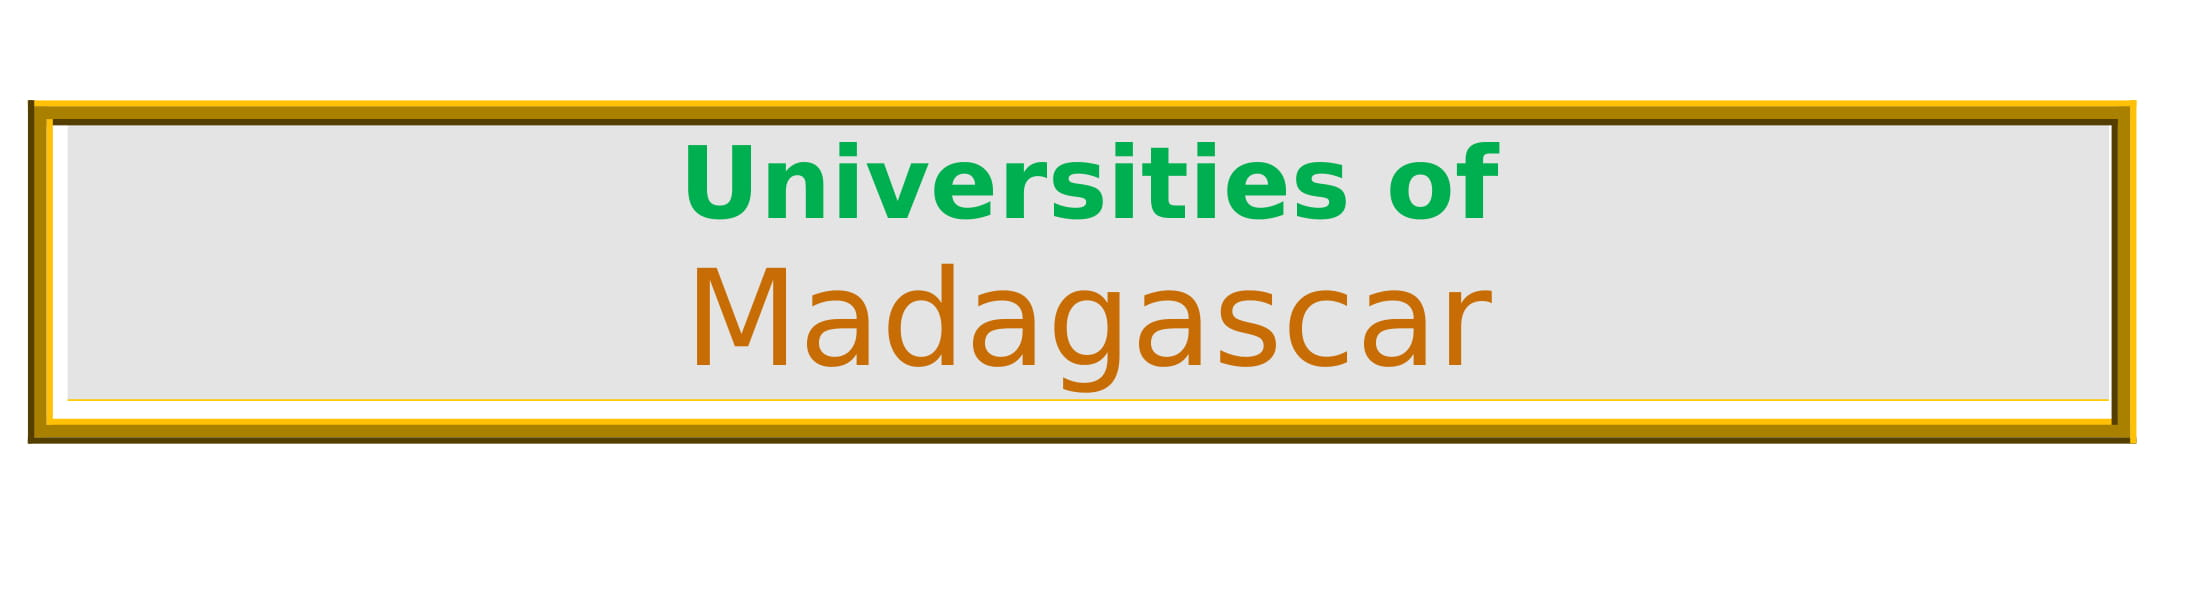 List of Universities in Madagascar